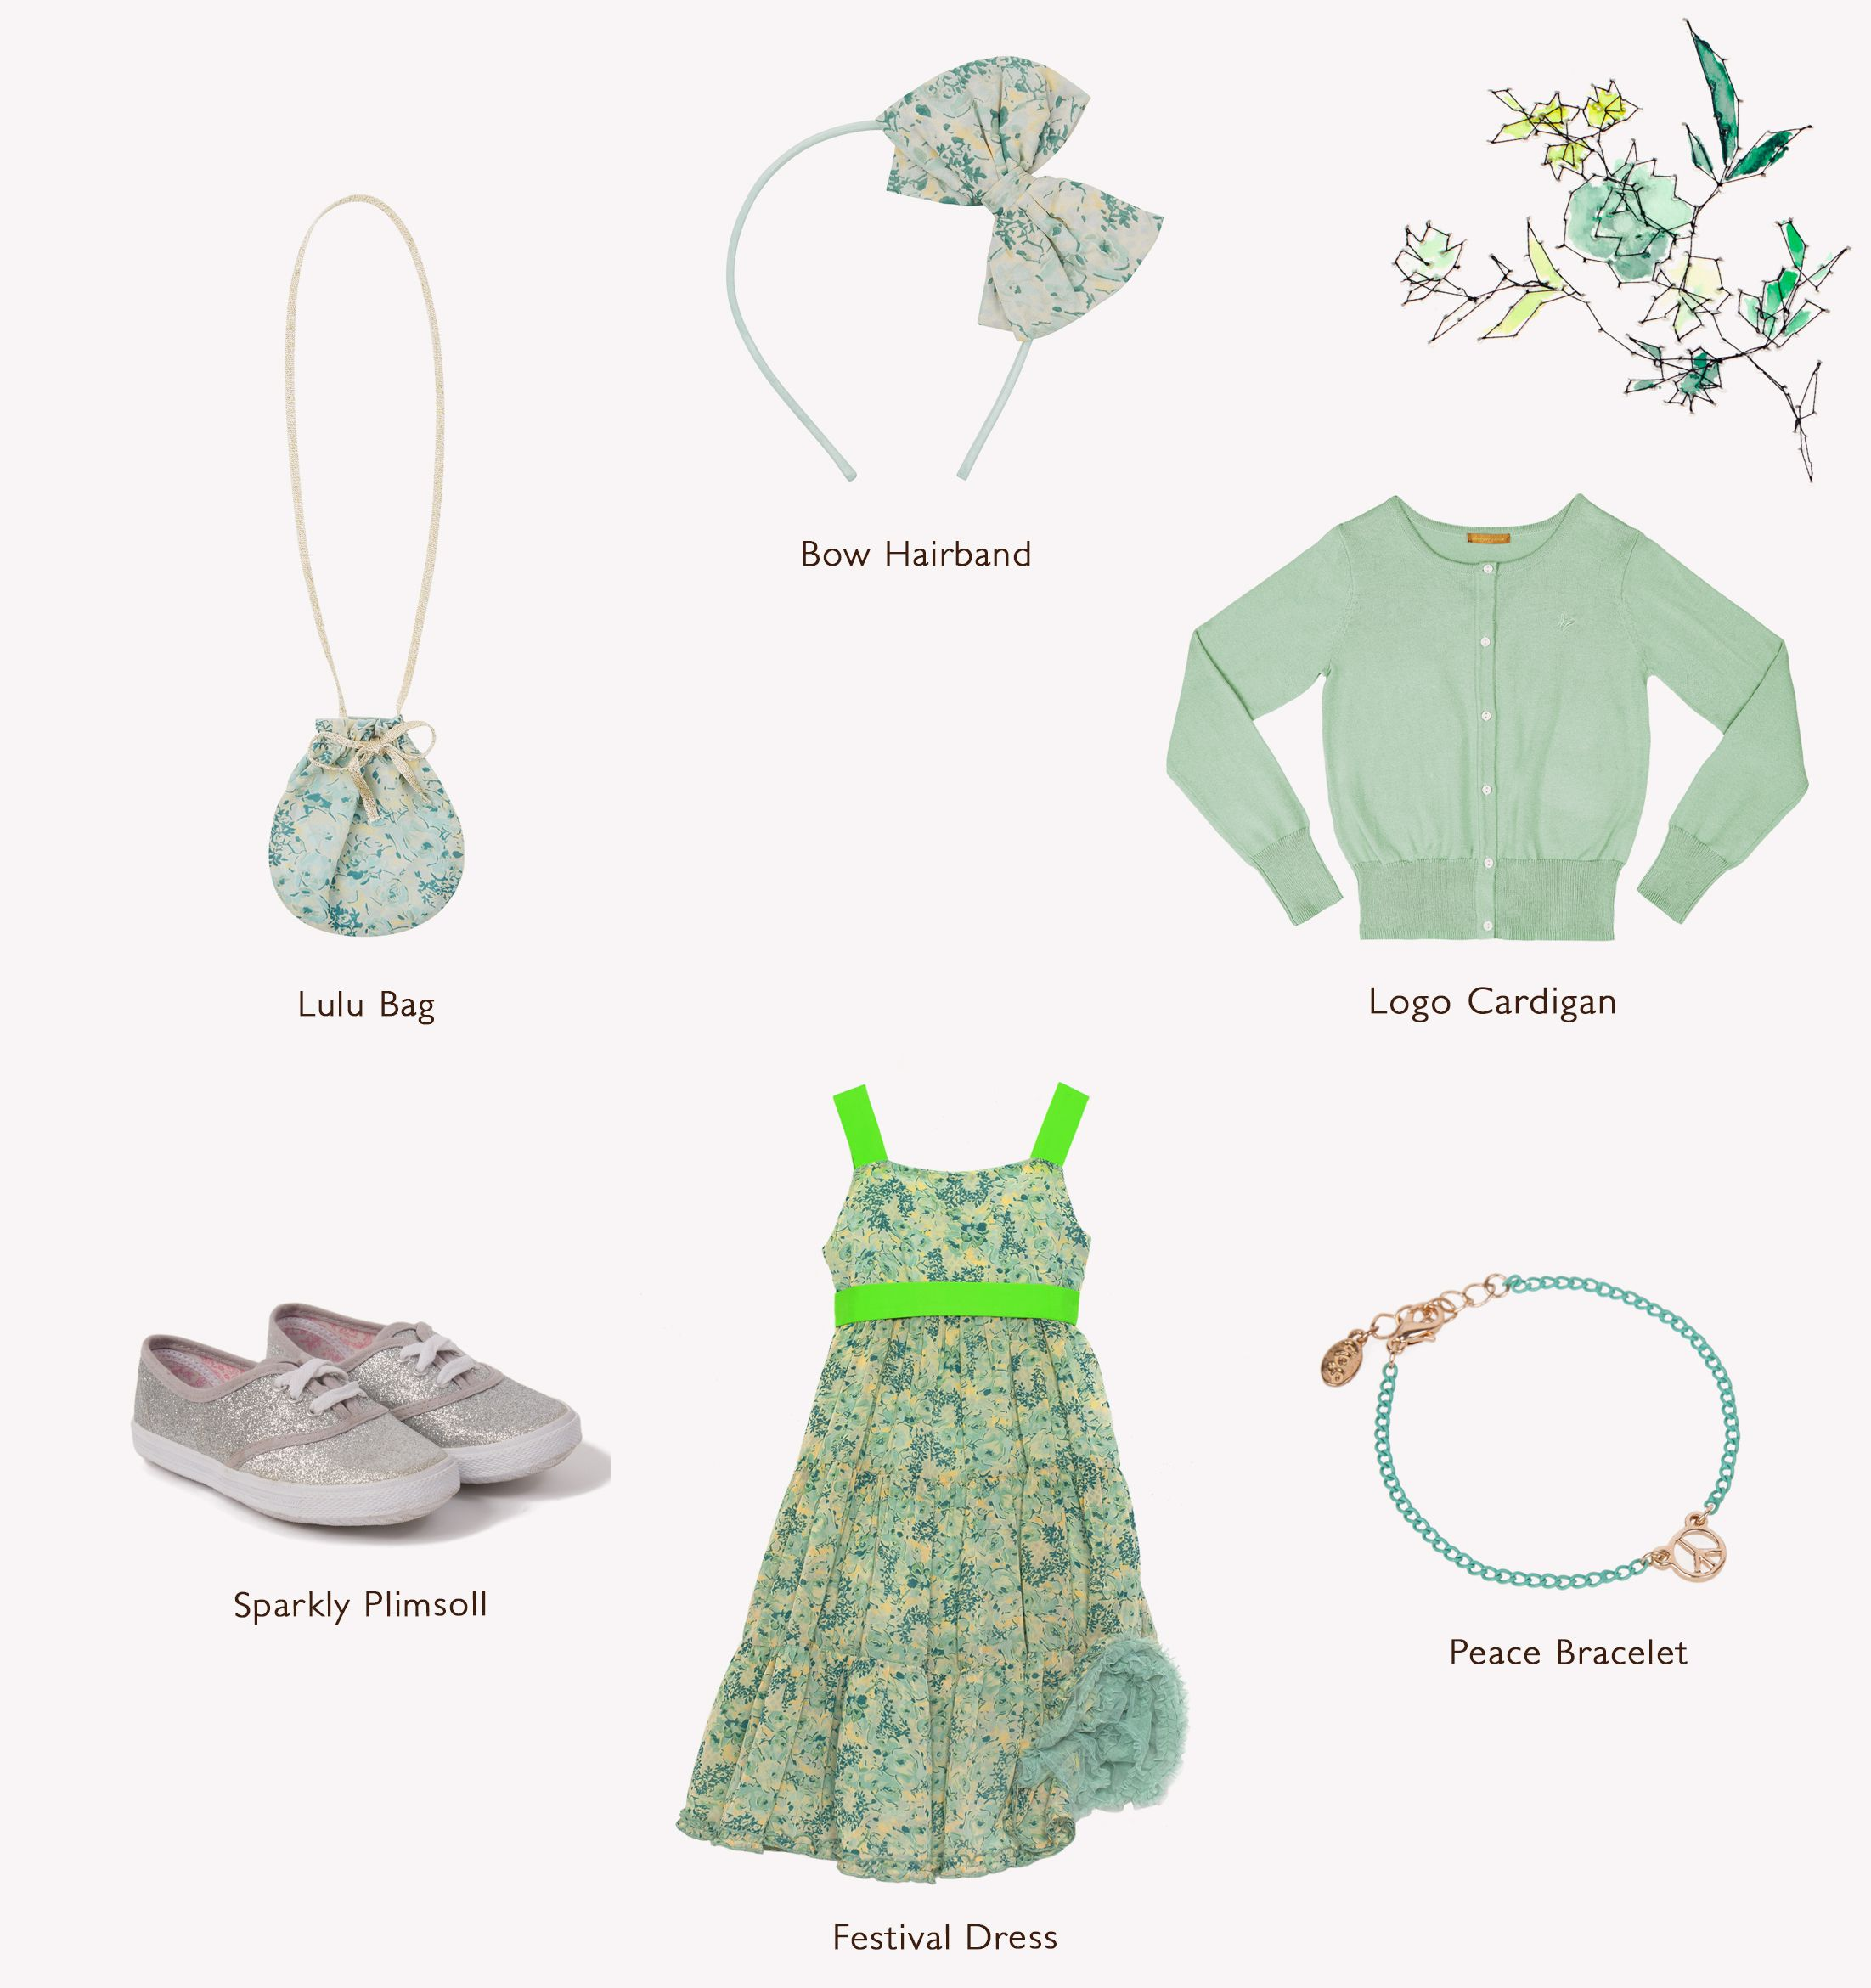 @ilovegorgeous #outfitoftheweek from head to toe: Bow Hairband, Logo Cardigan, Festival Dress, Peace Bracelet & Sparkly Plimsoll. #ss16 #lookbook #ootd #girlsclothing #outfit #outfitideas #accessories